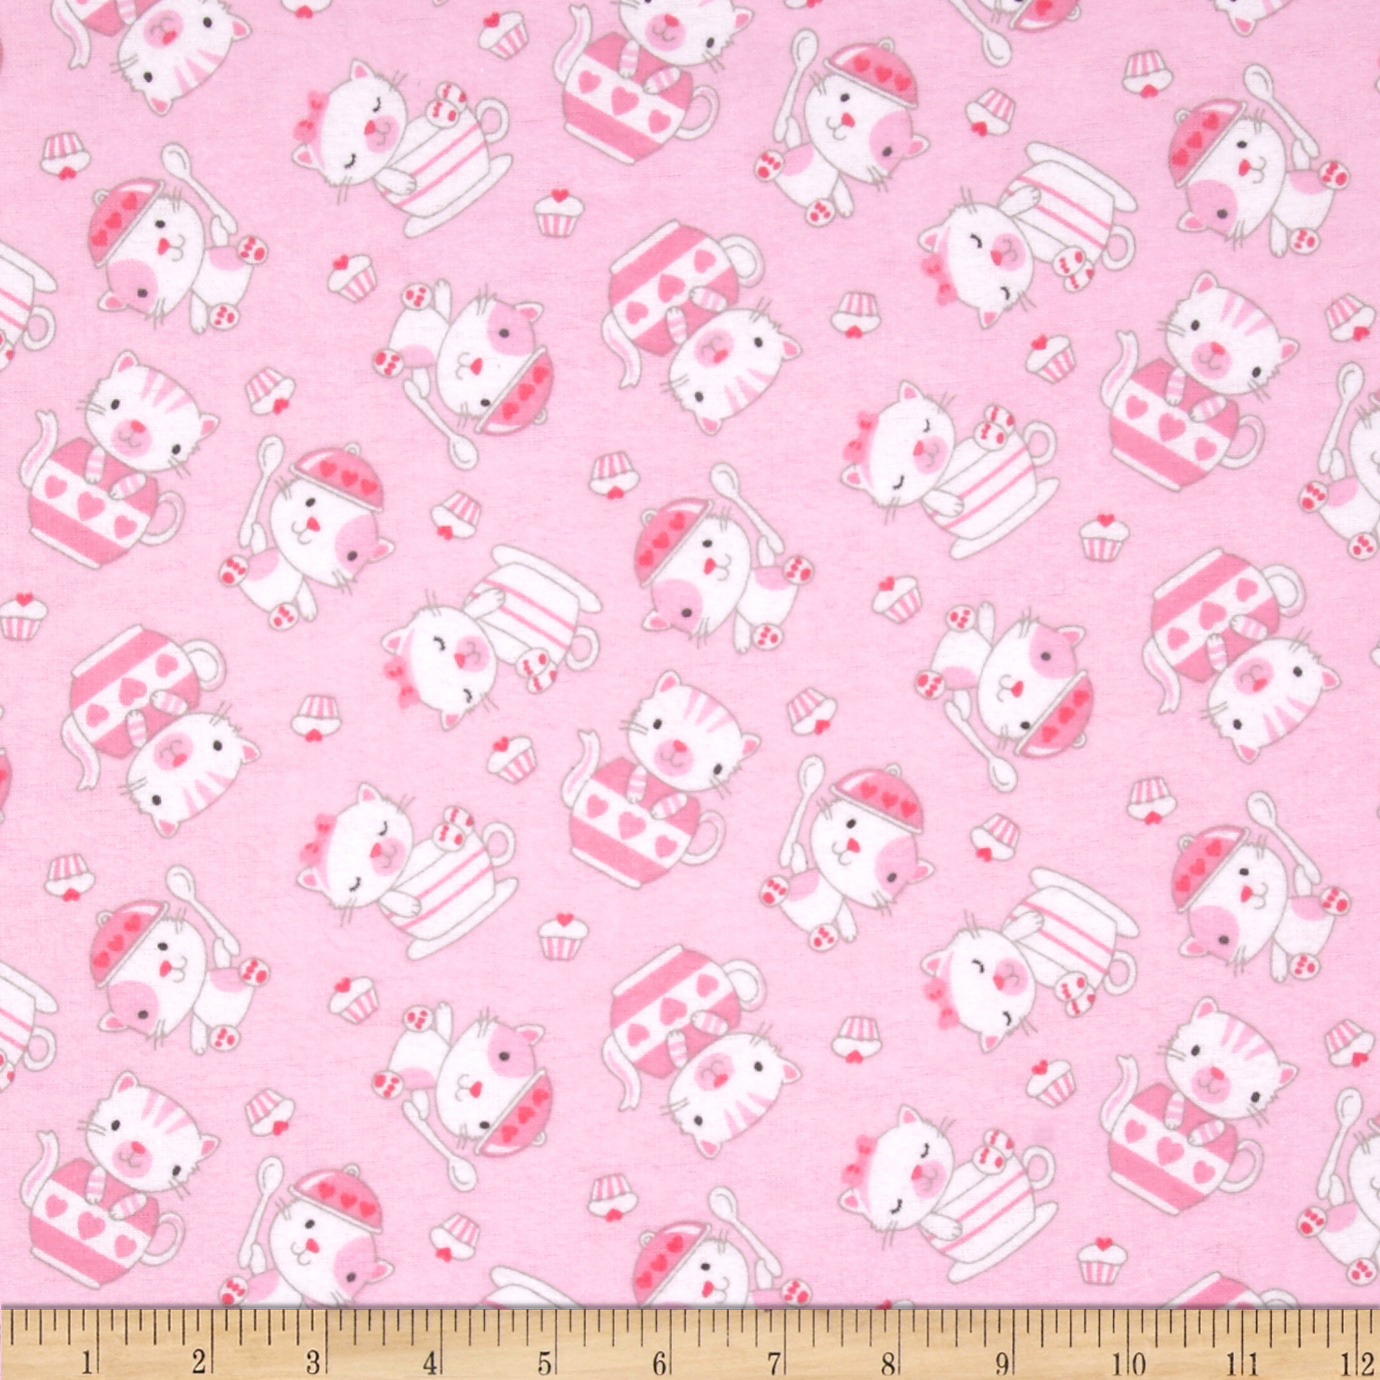 Comfy Flannel Teacup Kitty Pink Fabric